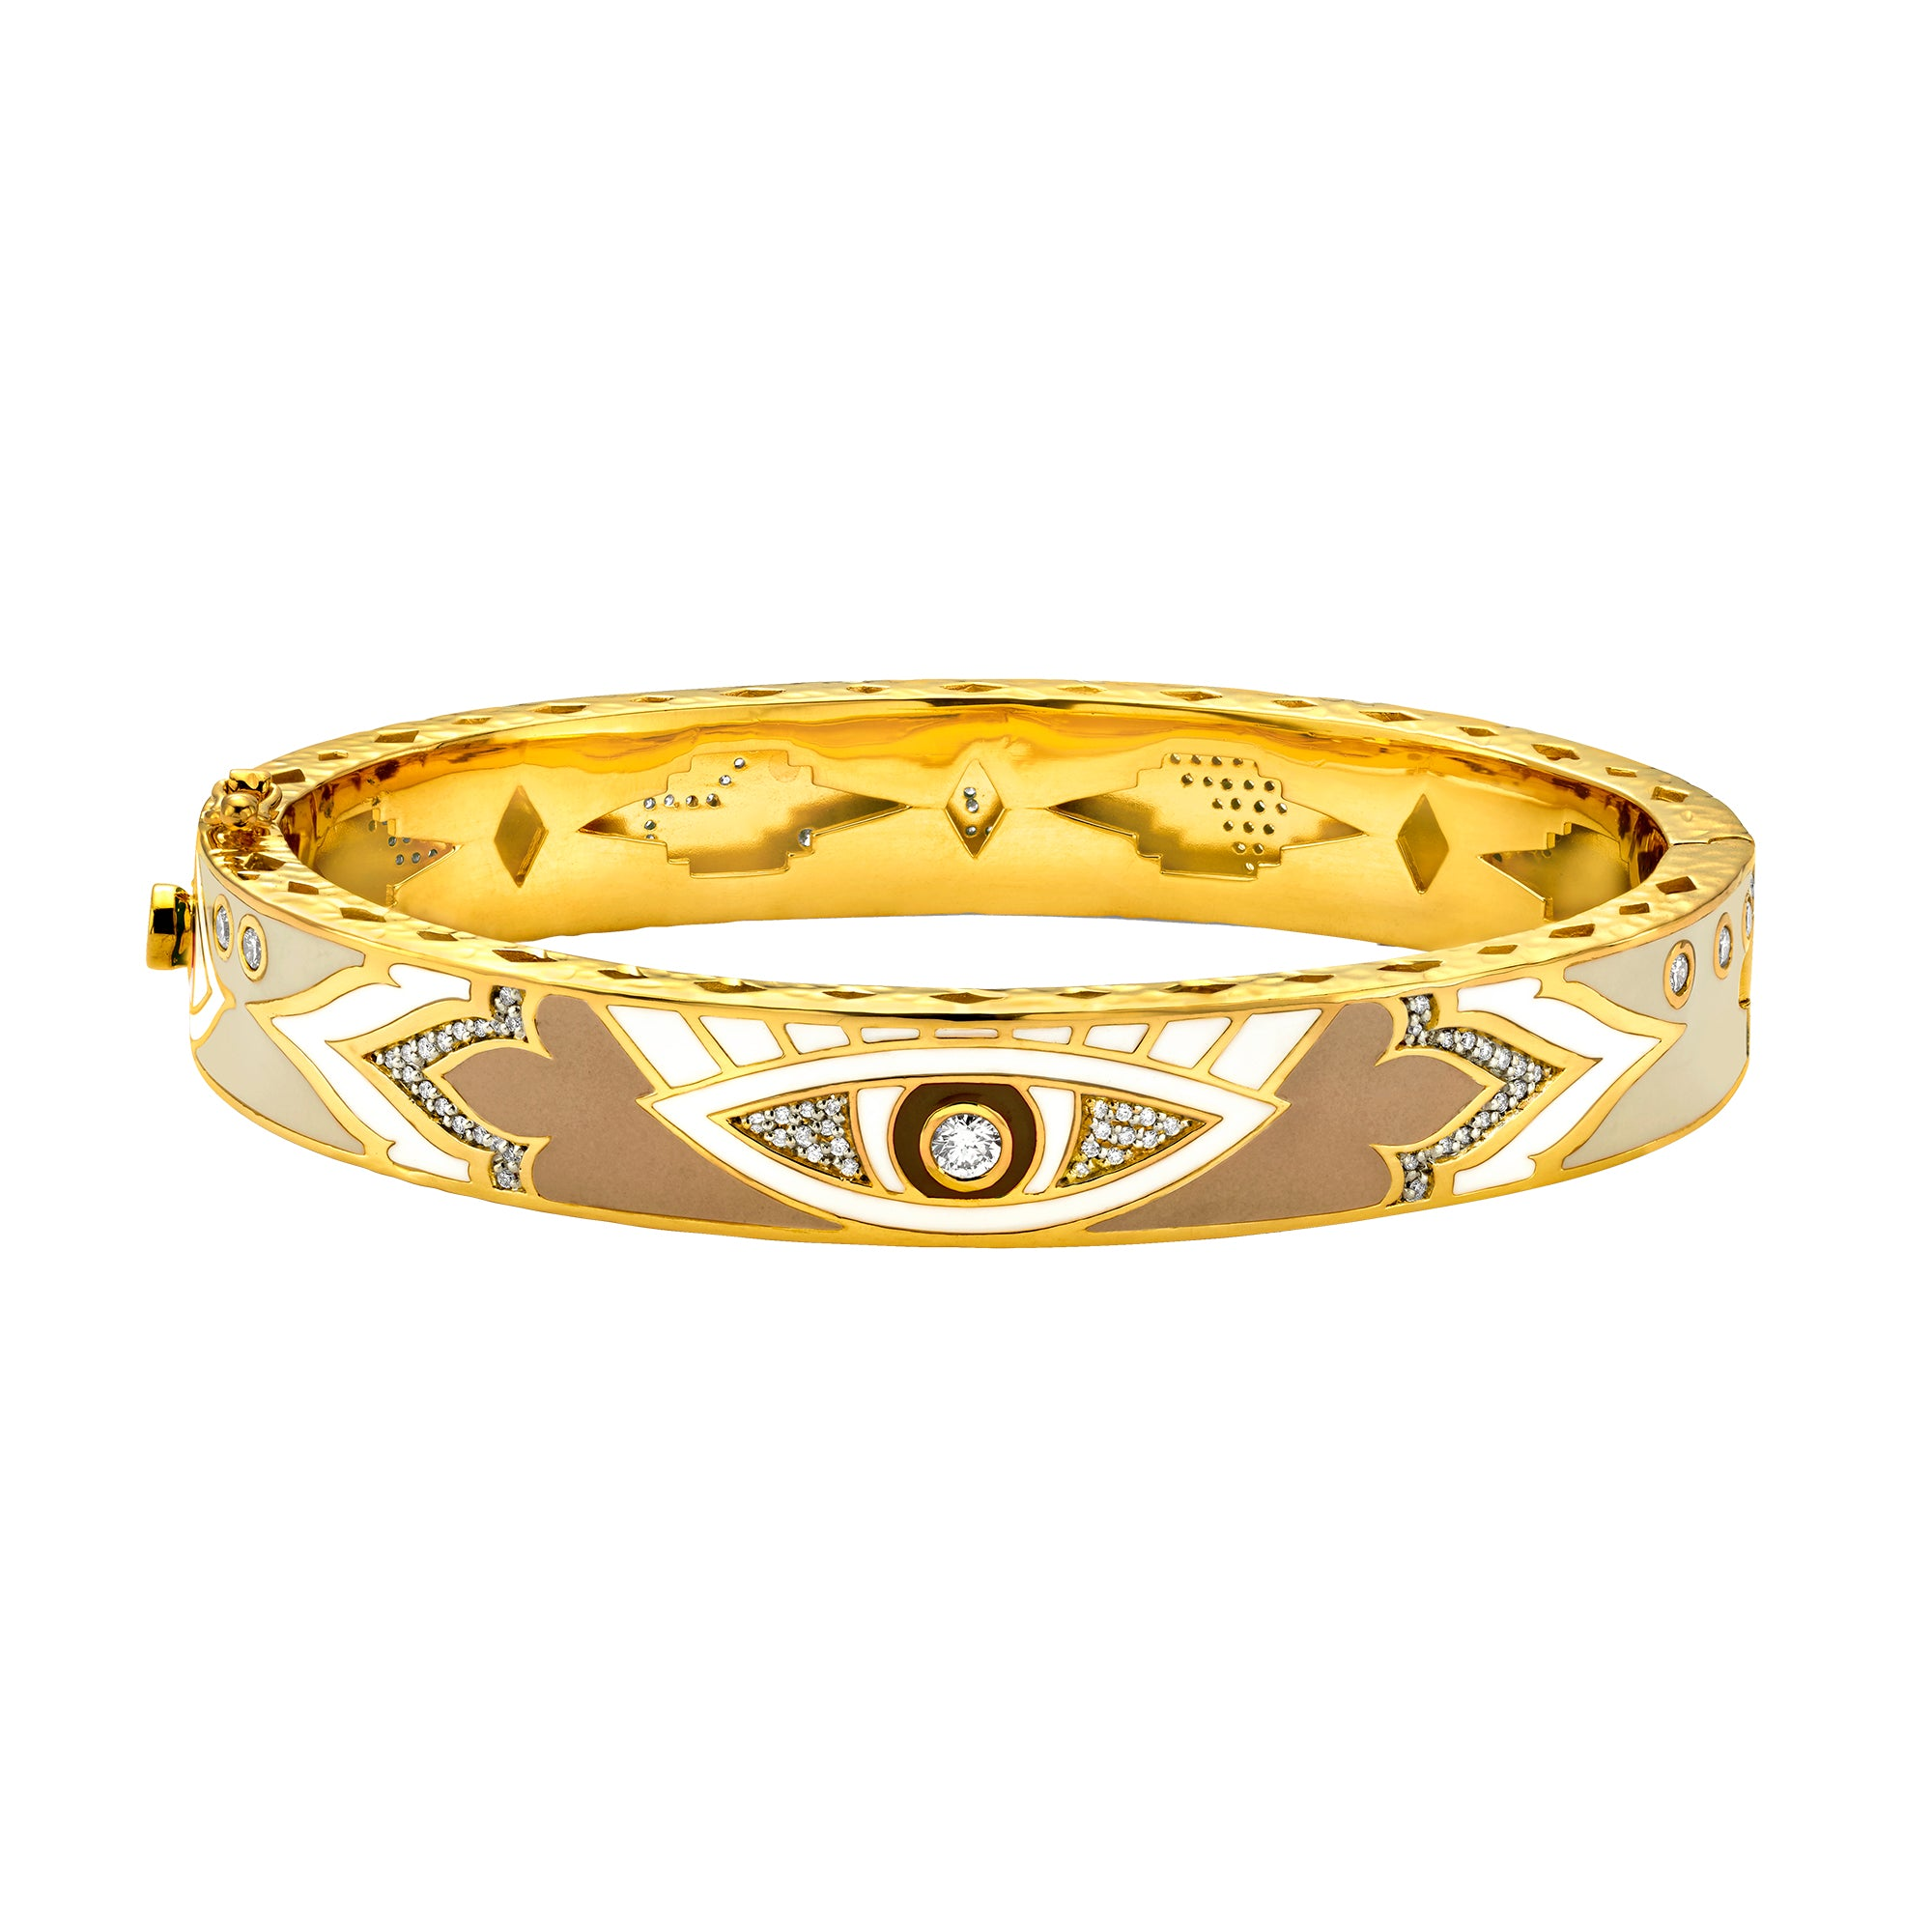 Gold Enamel White Diamond Evil Eye Bangle by Buddha Mama for Broken English Jewelry